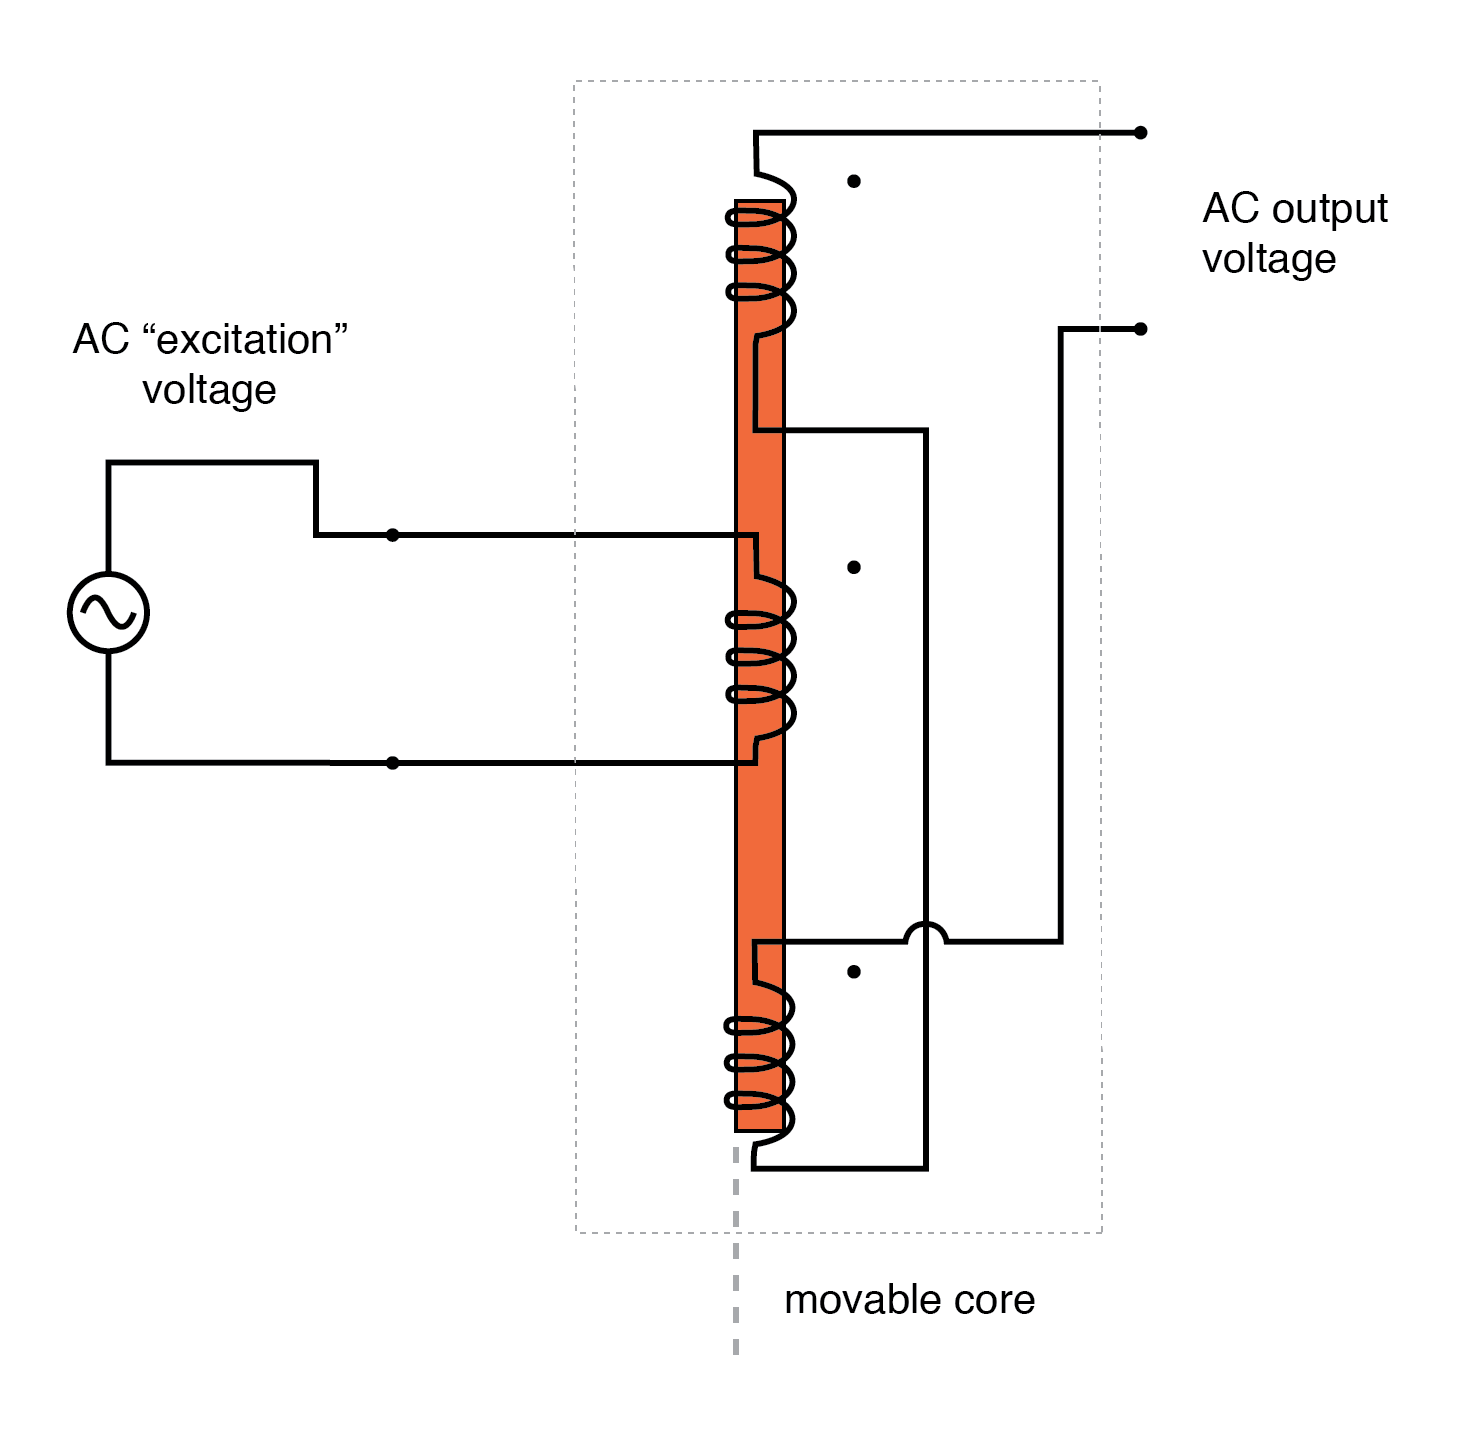 hight resolution of ac output of linear variable differential transformer lvdt indicates core position